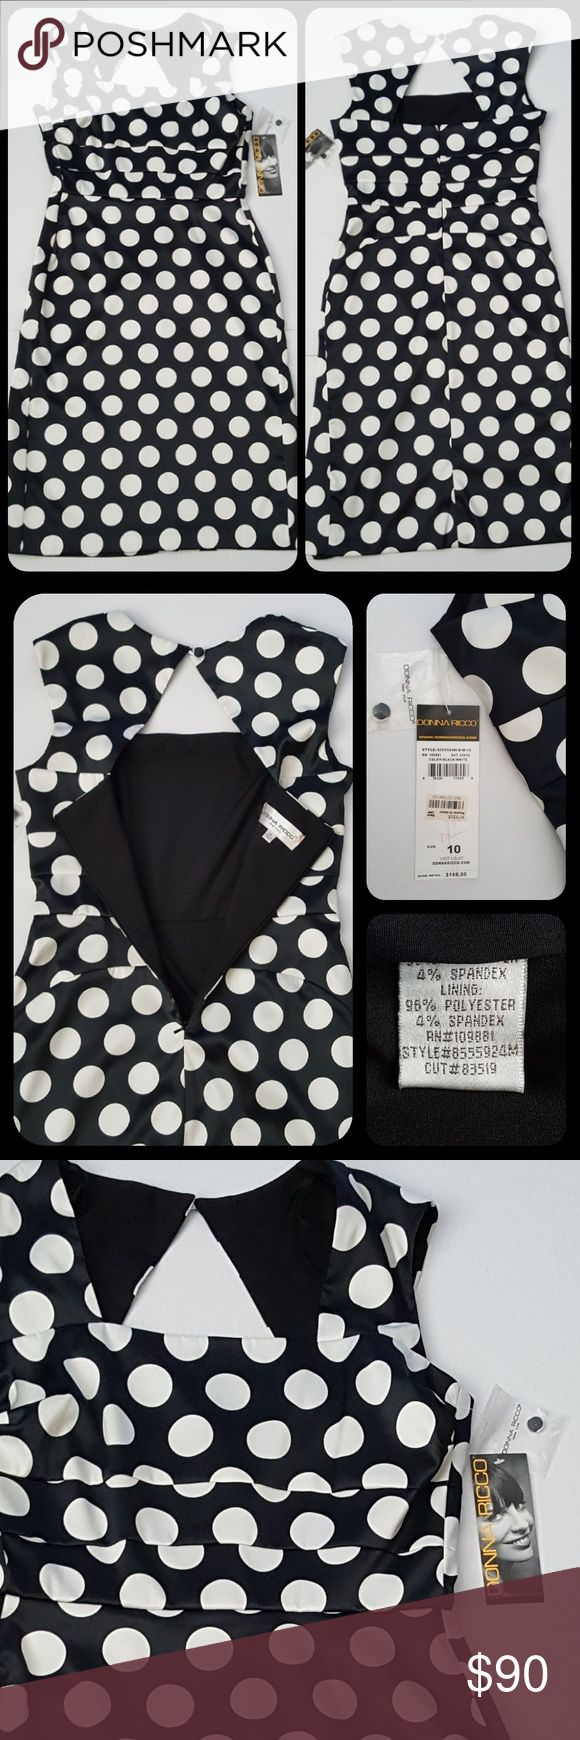 """Polka Dot Silky Material Dress New With Tags Bought this dress for a special occasion. Ended up getting another one. * New with tags still attached*  - Beautiful and flirty style - Feels like silk ~ So soft! - Black and White Polka Dots - Zippers on back to the lower waist - Lined  - 42"""" Long Donna Ricco Dresses"""